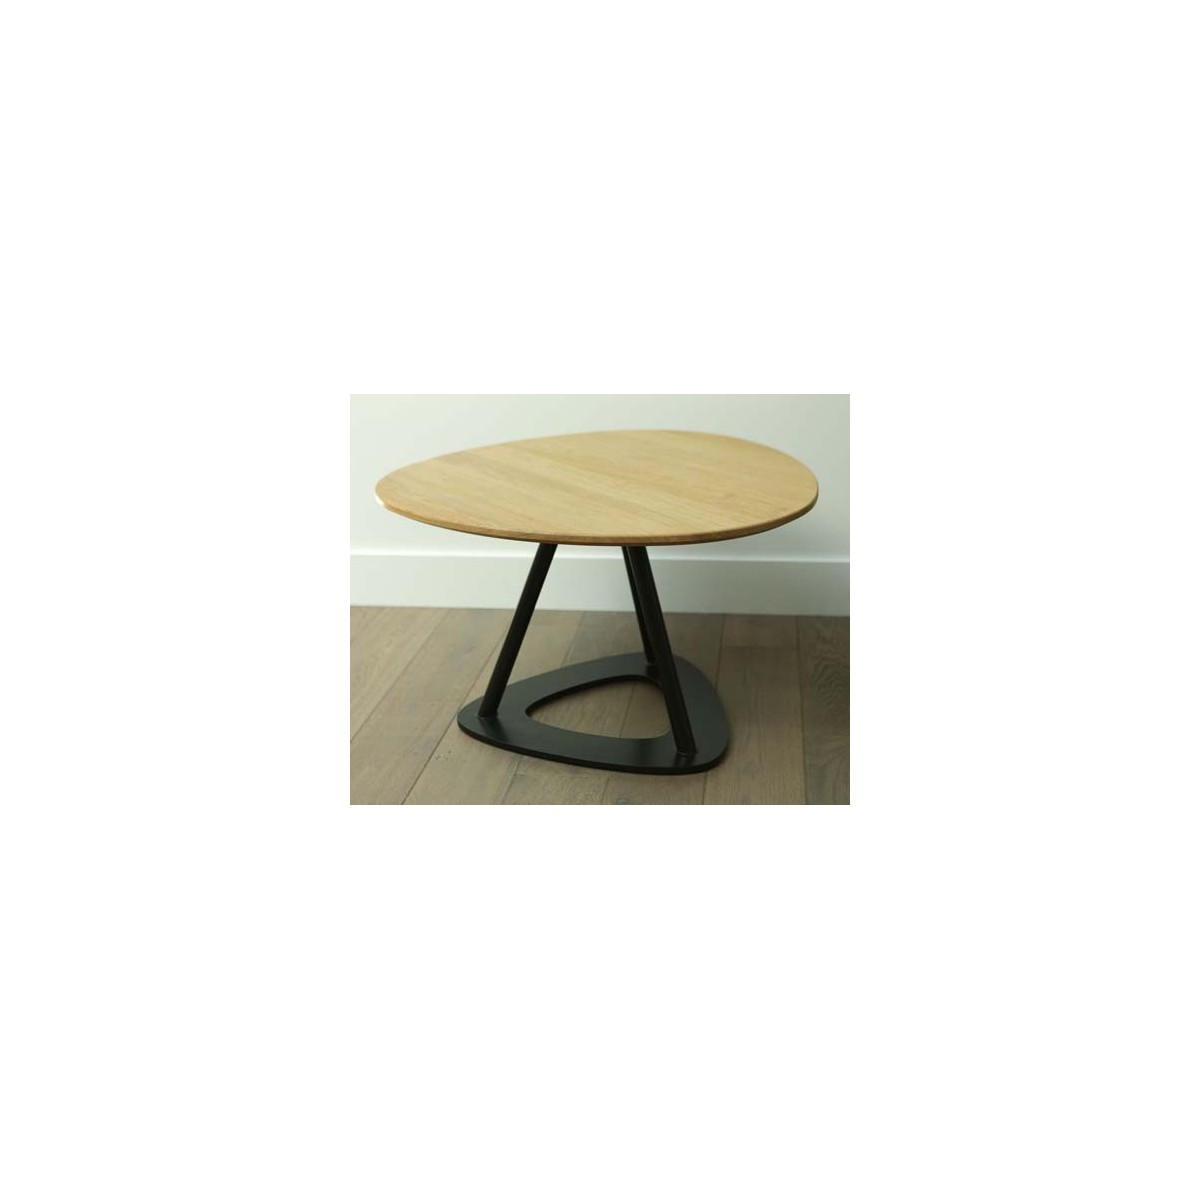 Tables basses contemporaines en ch ne et acier pop bois by - Table bois moderne ...